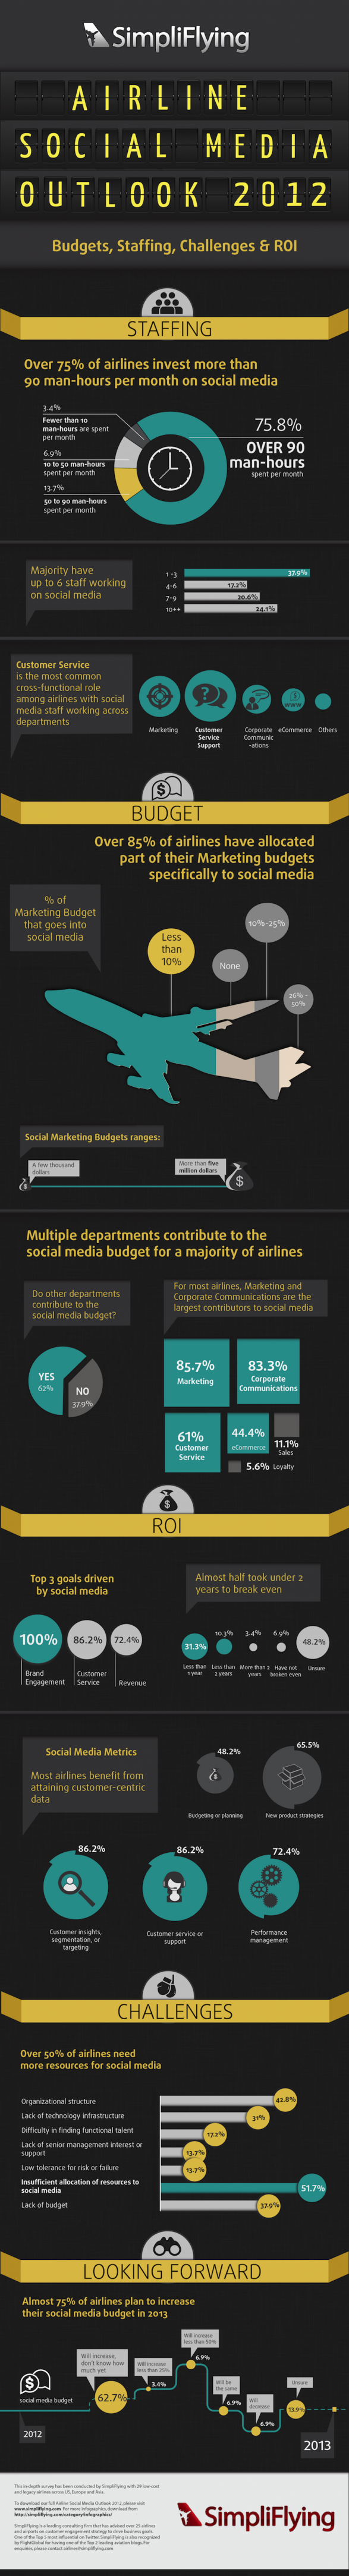 Airline Social Media Outlook 2012